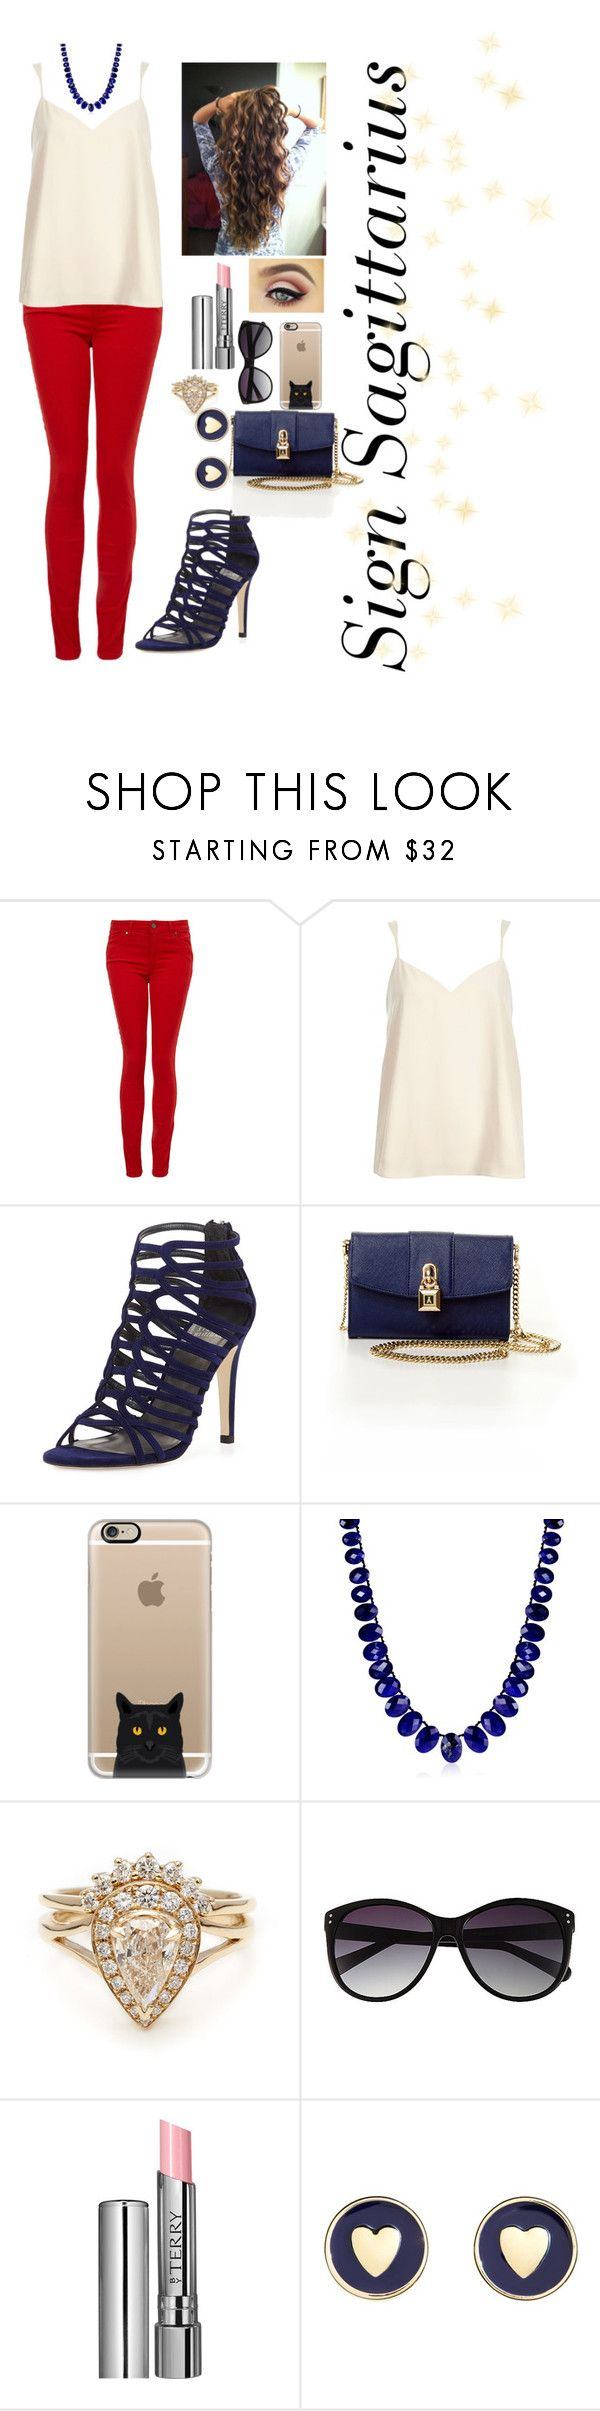 """""""Signo de Sagitário"""" by rebecadmais ❤ liked on Polyvore featuring Paige Denim, River Island, Stuart Weitzman, Patrizia Pepe, Casetify, Me&Ro, Vince Camuto, By Terry and Brooks Brothers"""